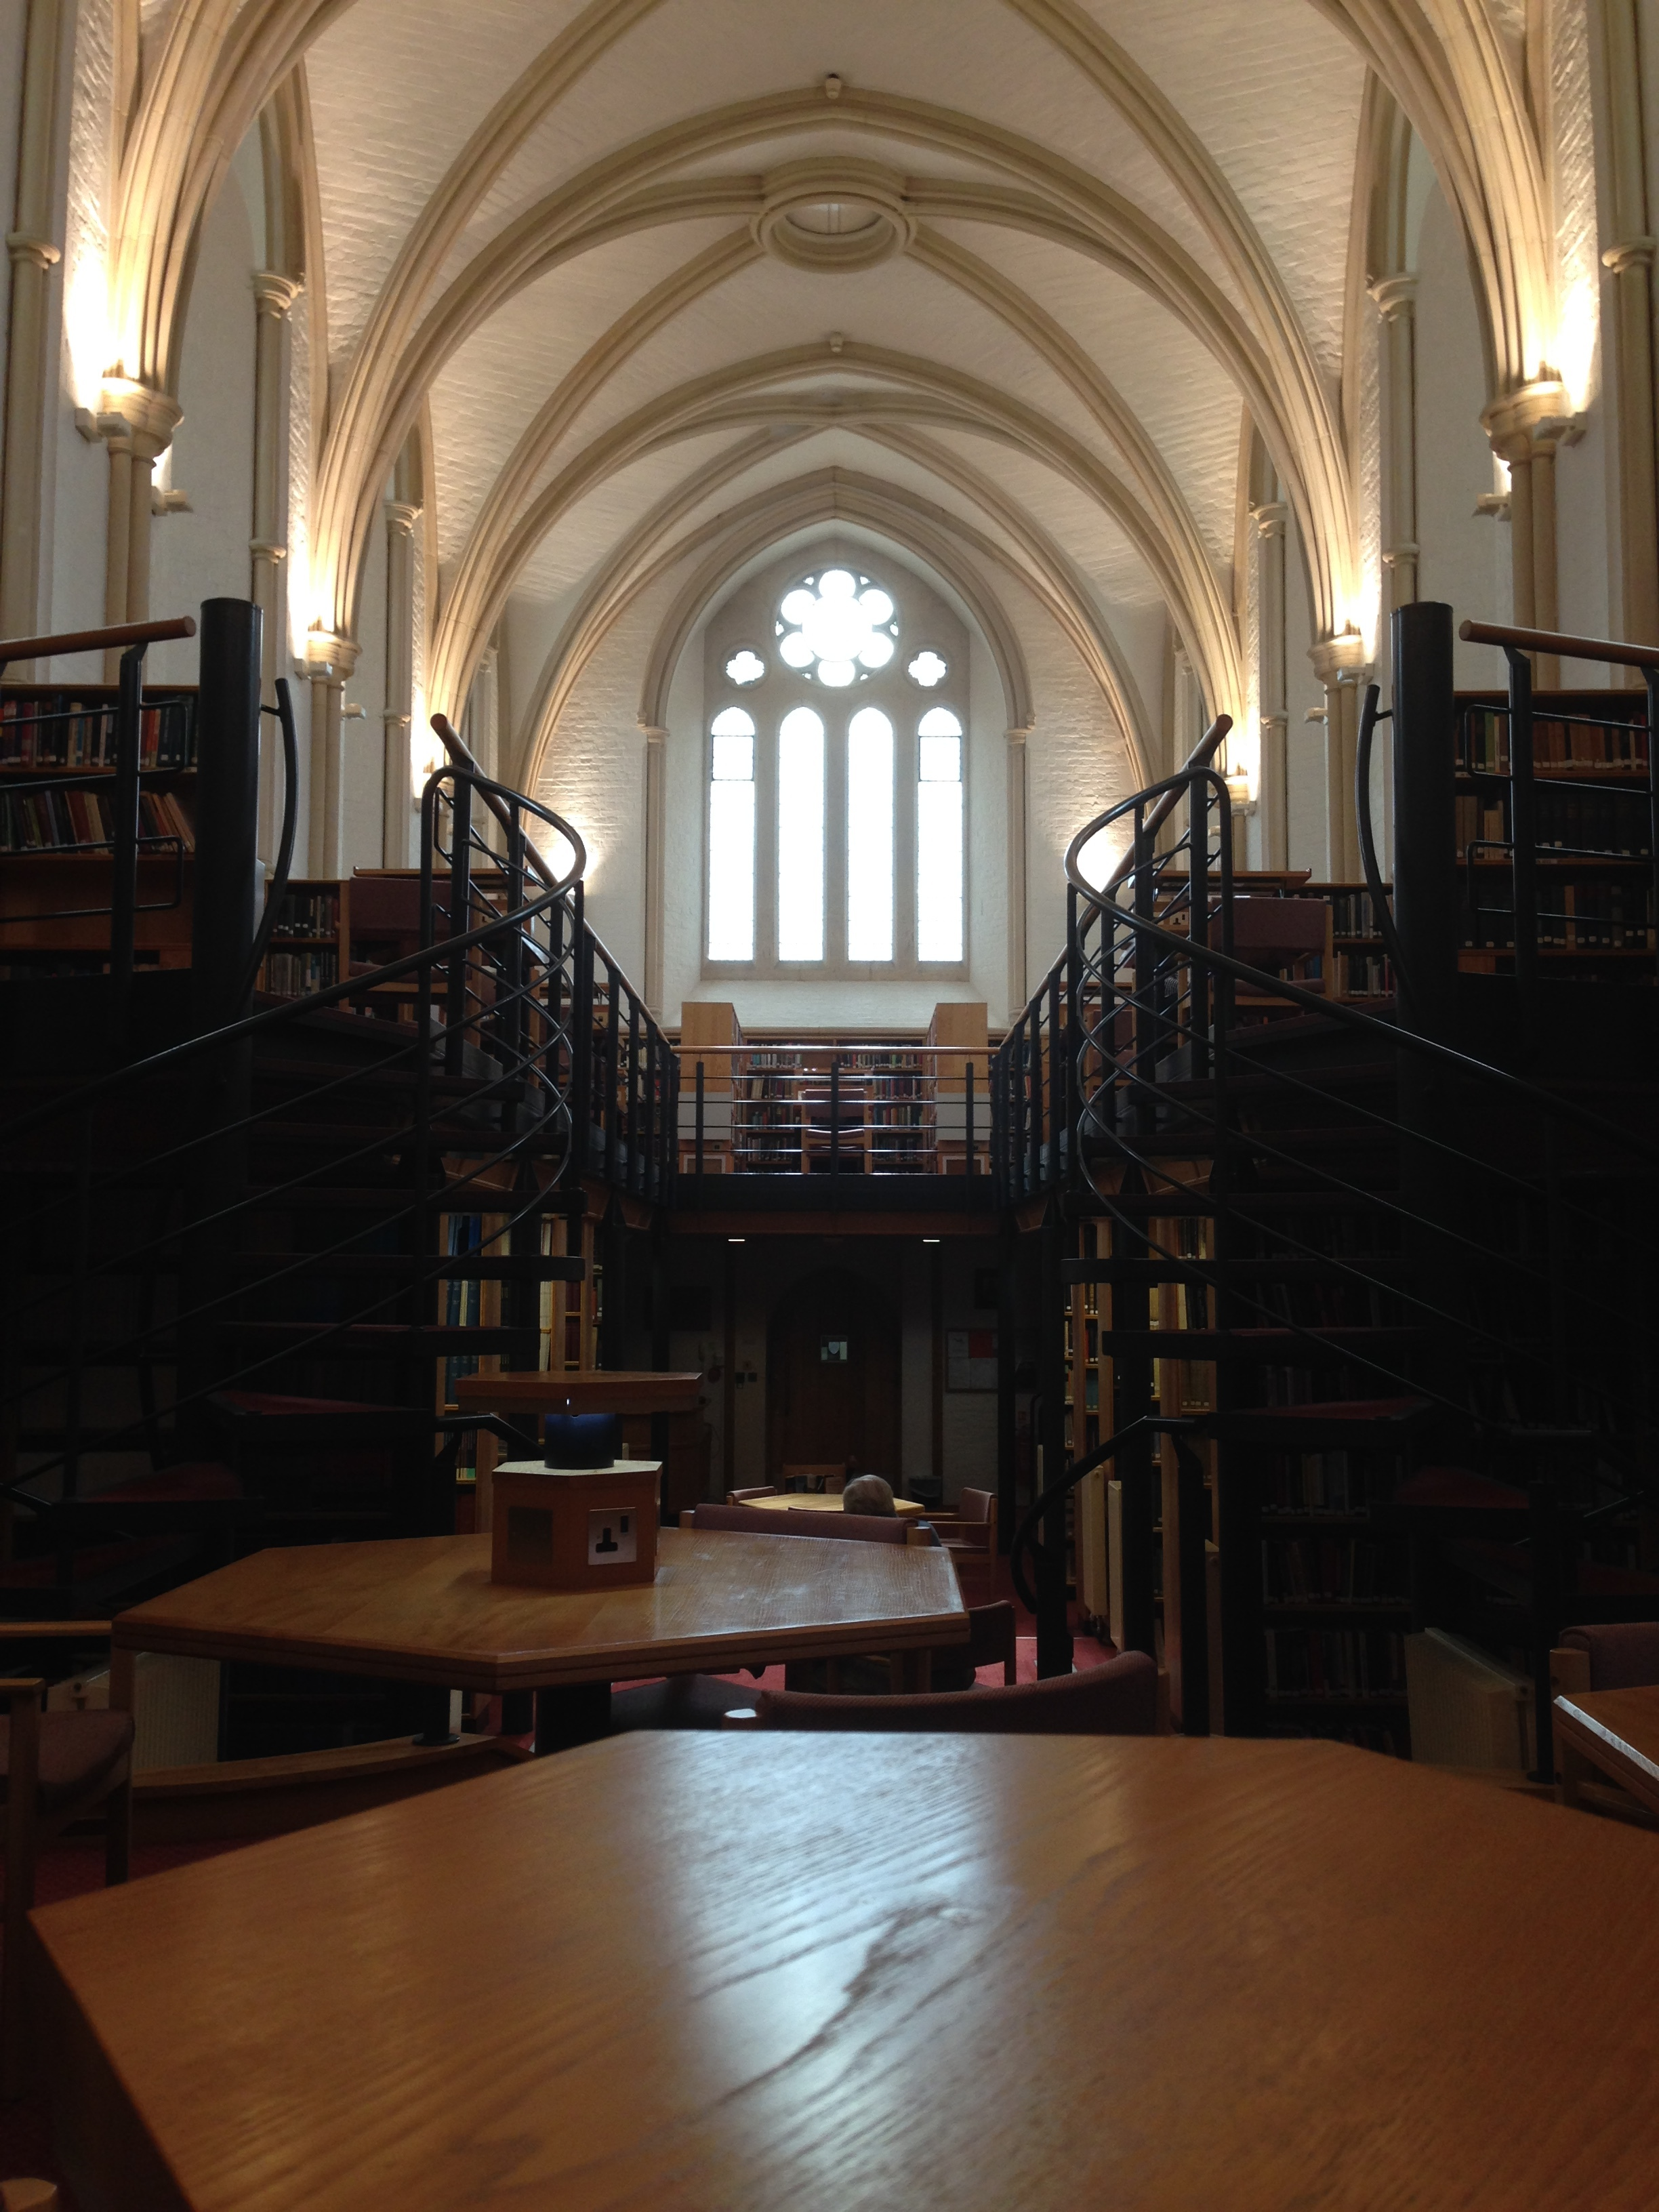 - St Antony's College library - this Oxford college has buildings that were formerly part of a convent. The college's library used to be a church.  I wrote a substantial part of the final paper in this space.